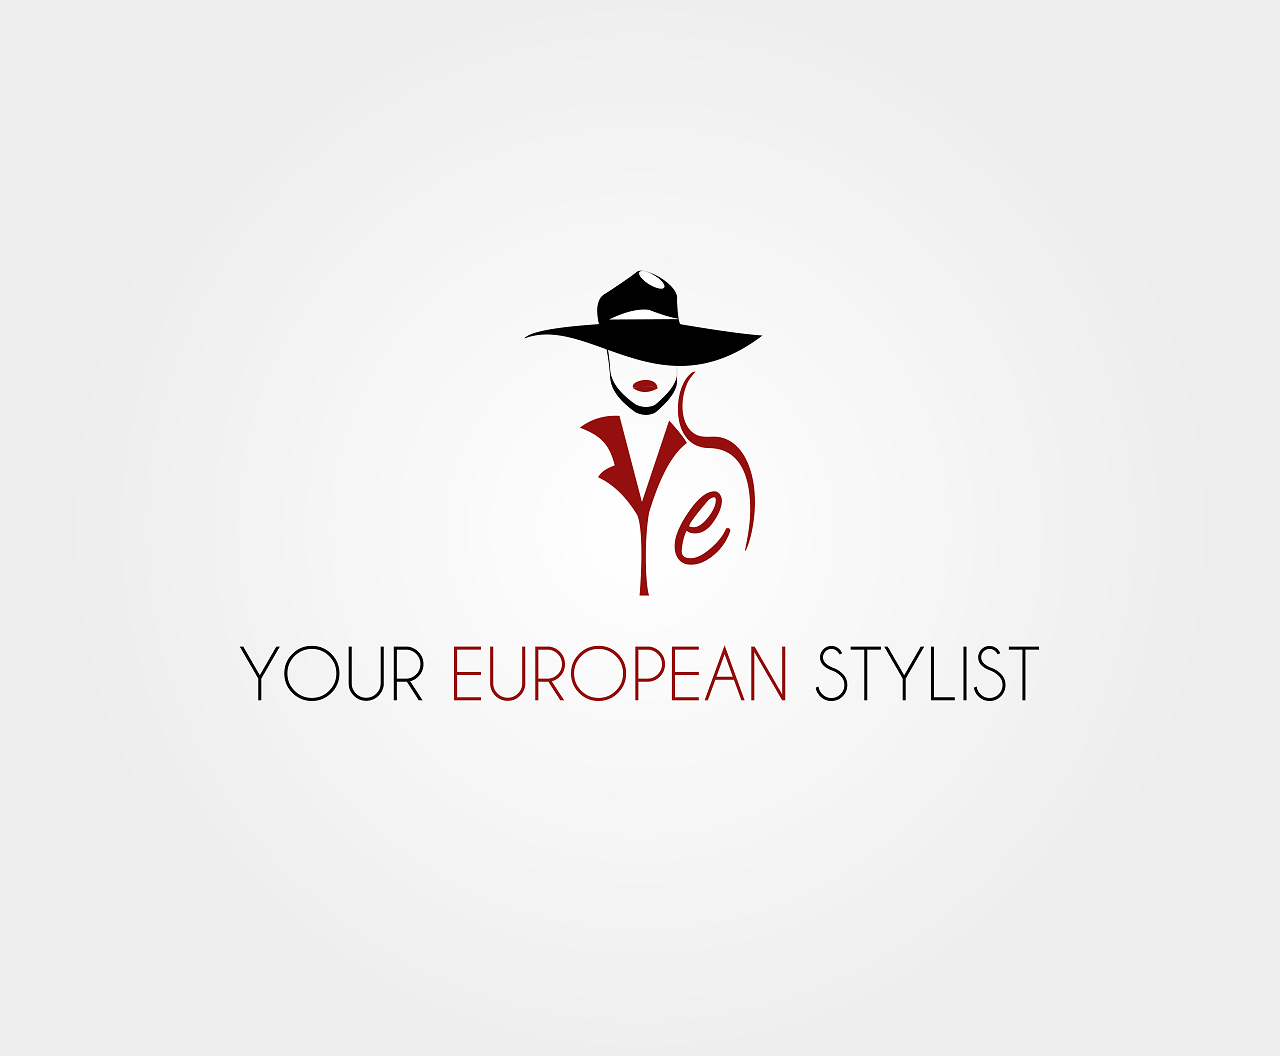 logo for Your European Stylist